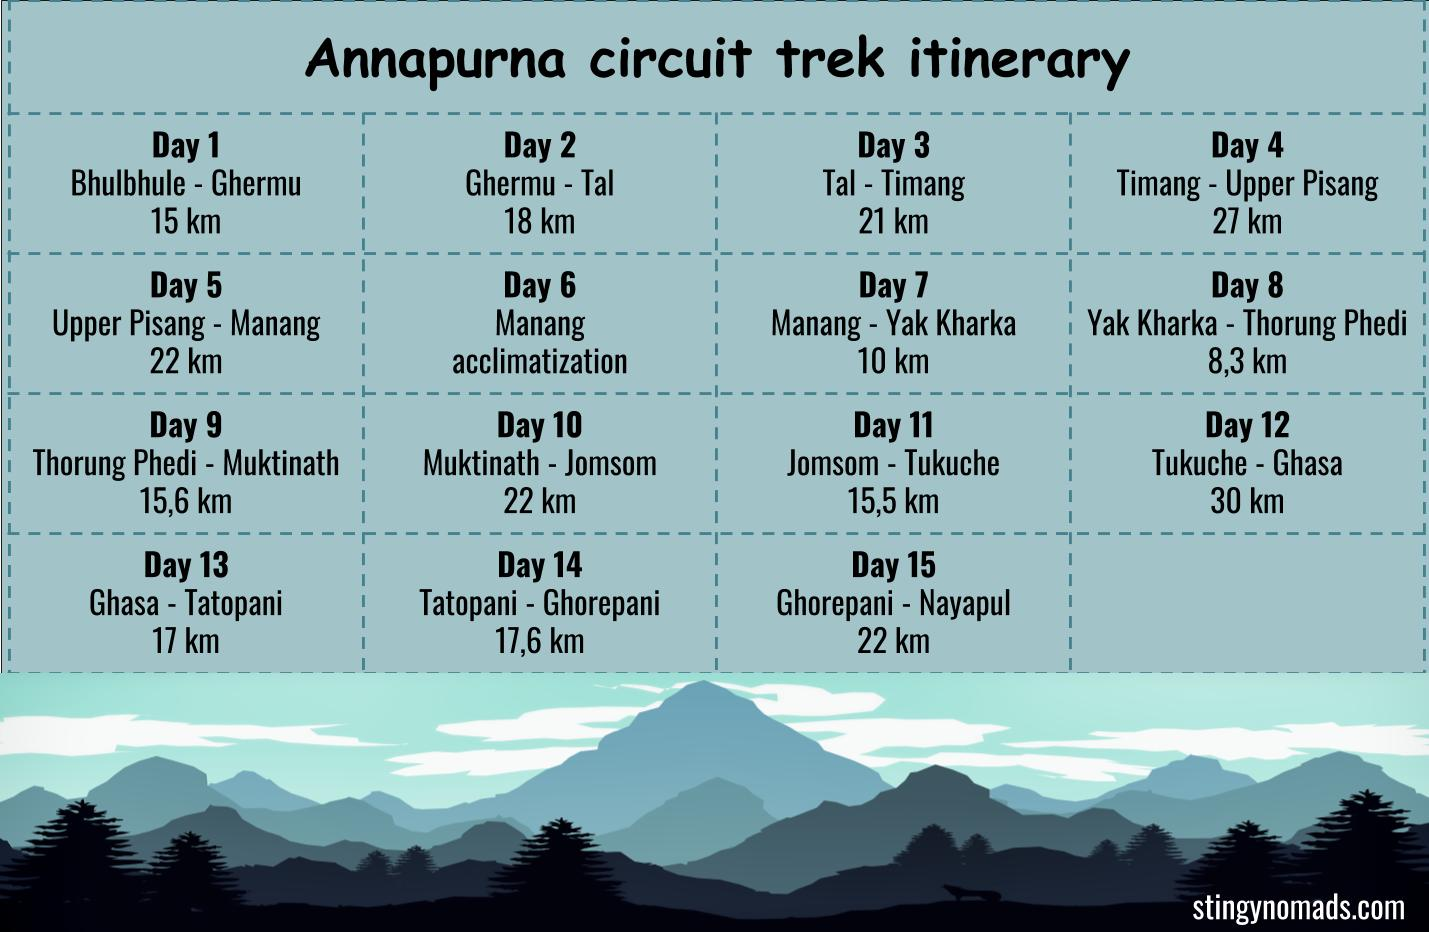 A detailed 2-week itinerary for the Annapurna Circuit trek